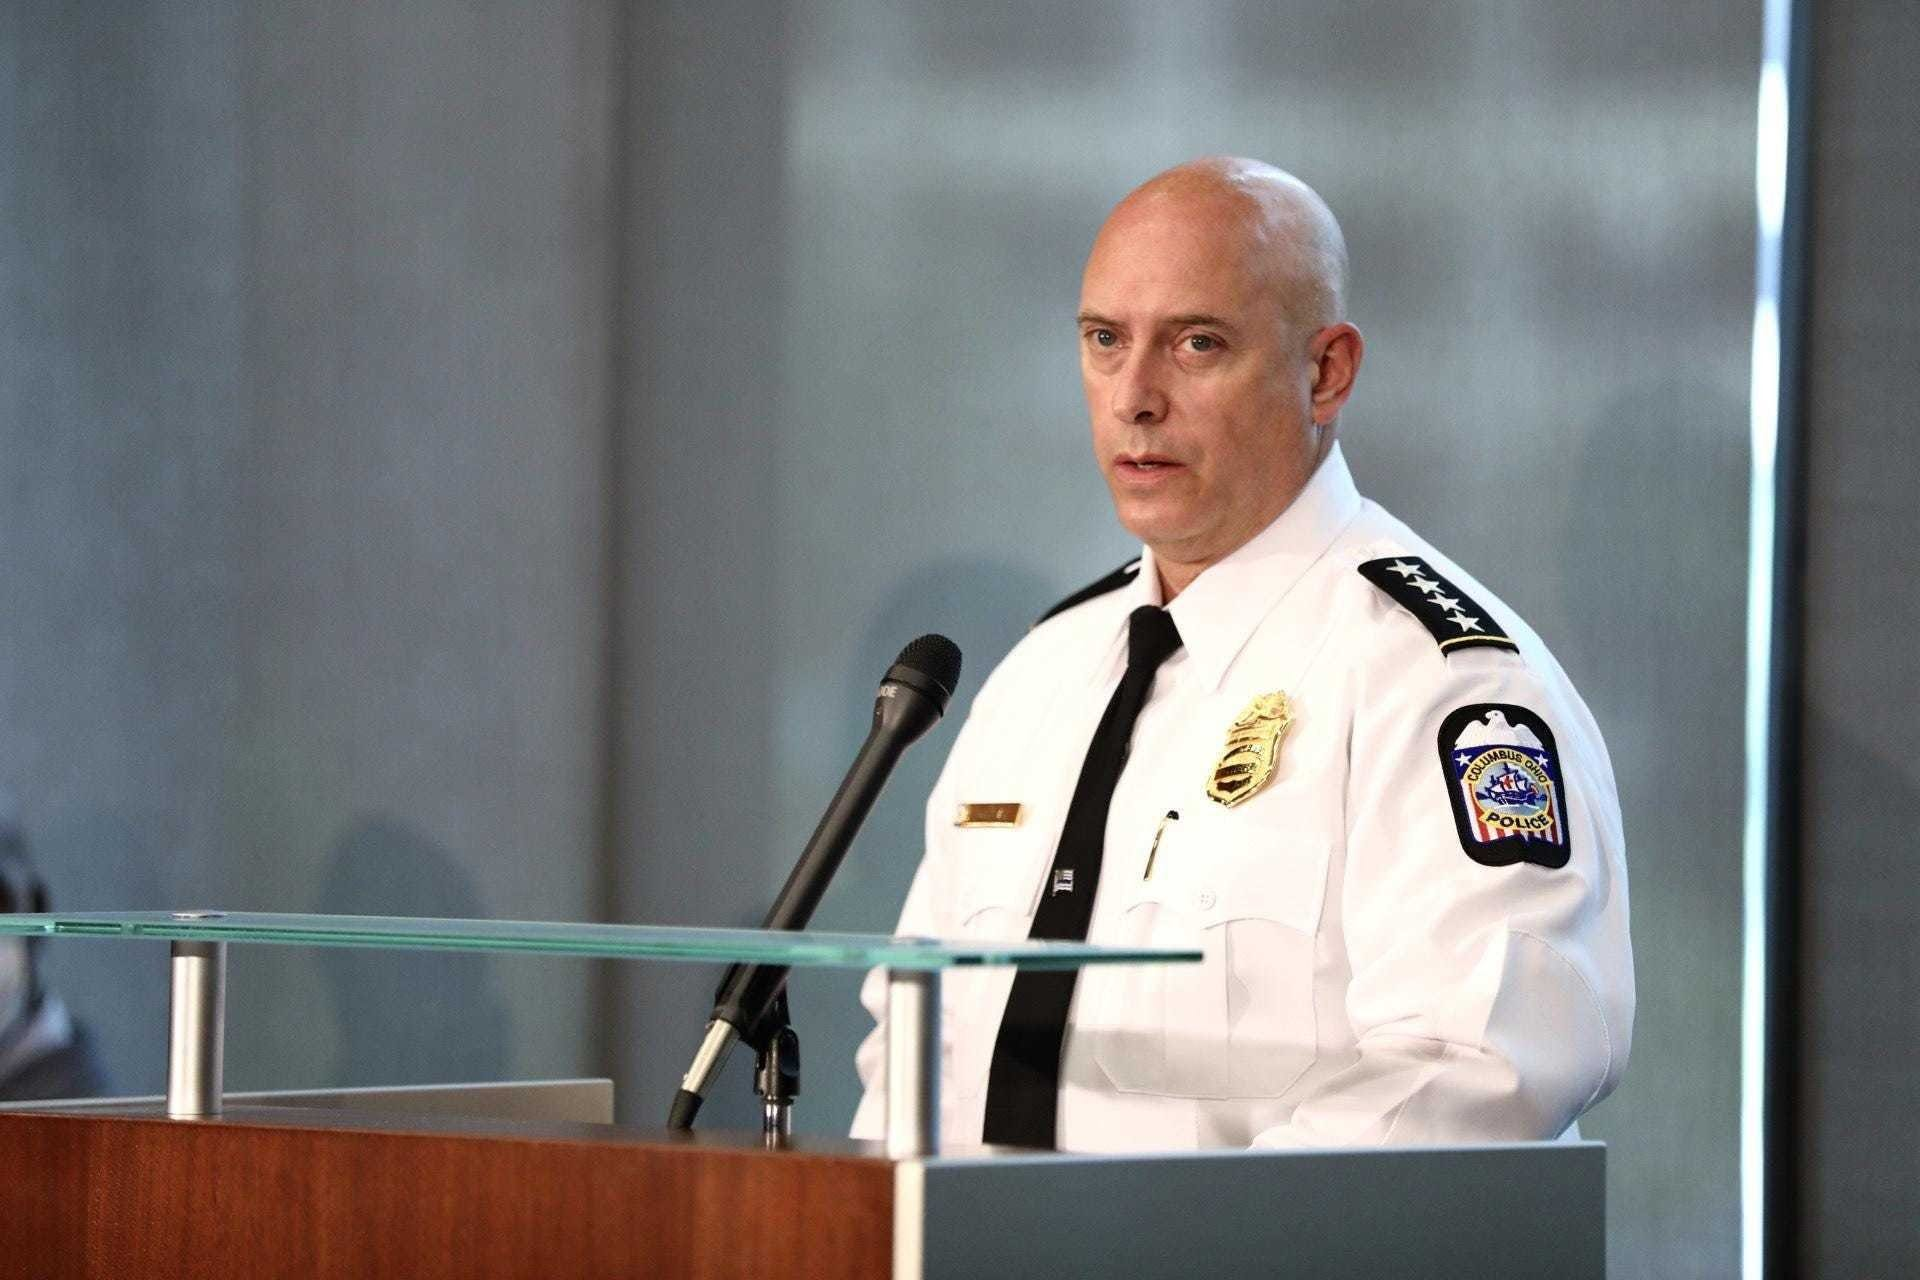 Columbus police chief demoted after 2 fatal shootings of unarmed Black men by law enforcement